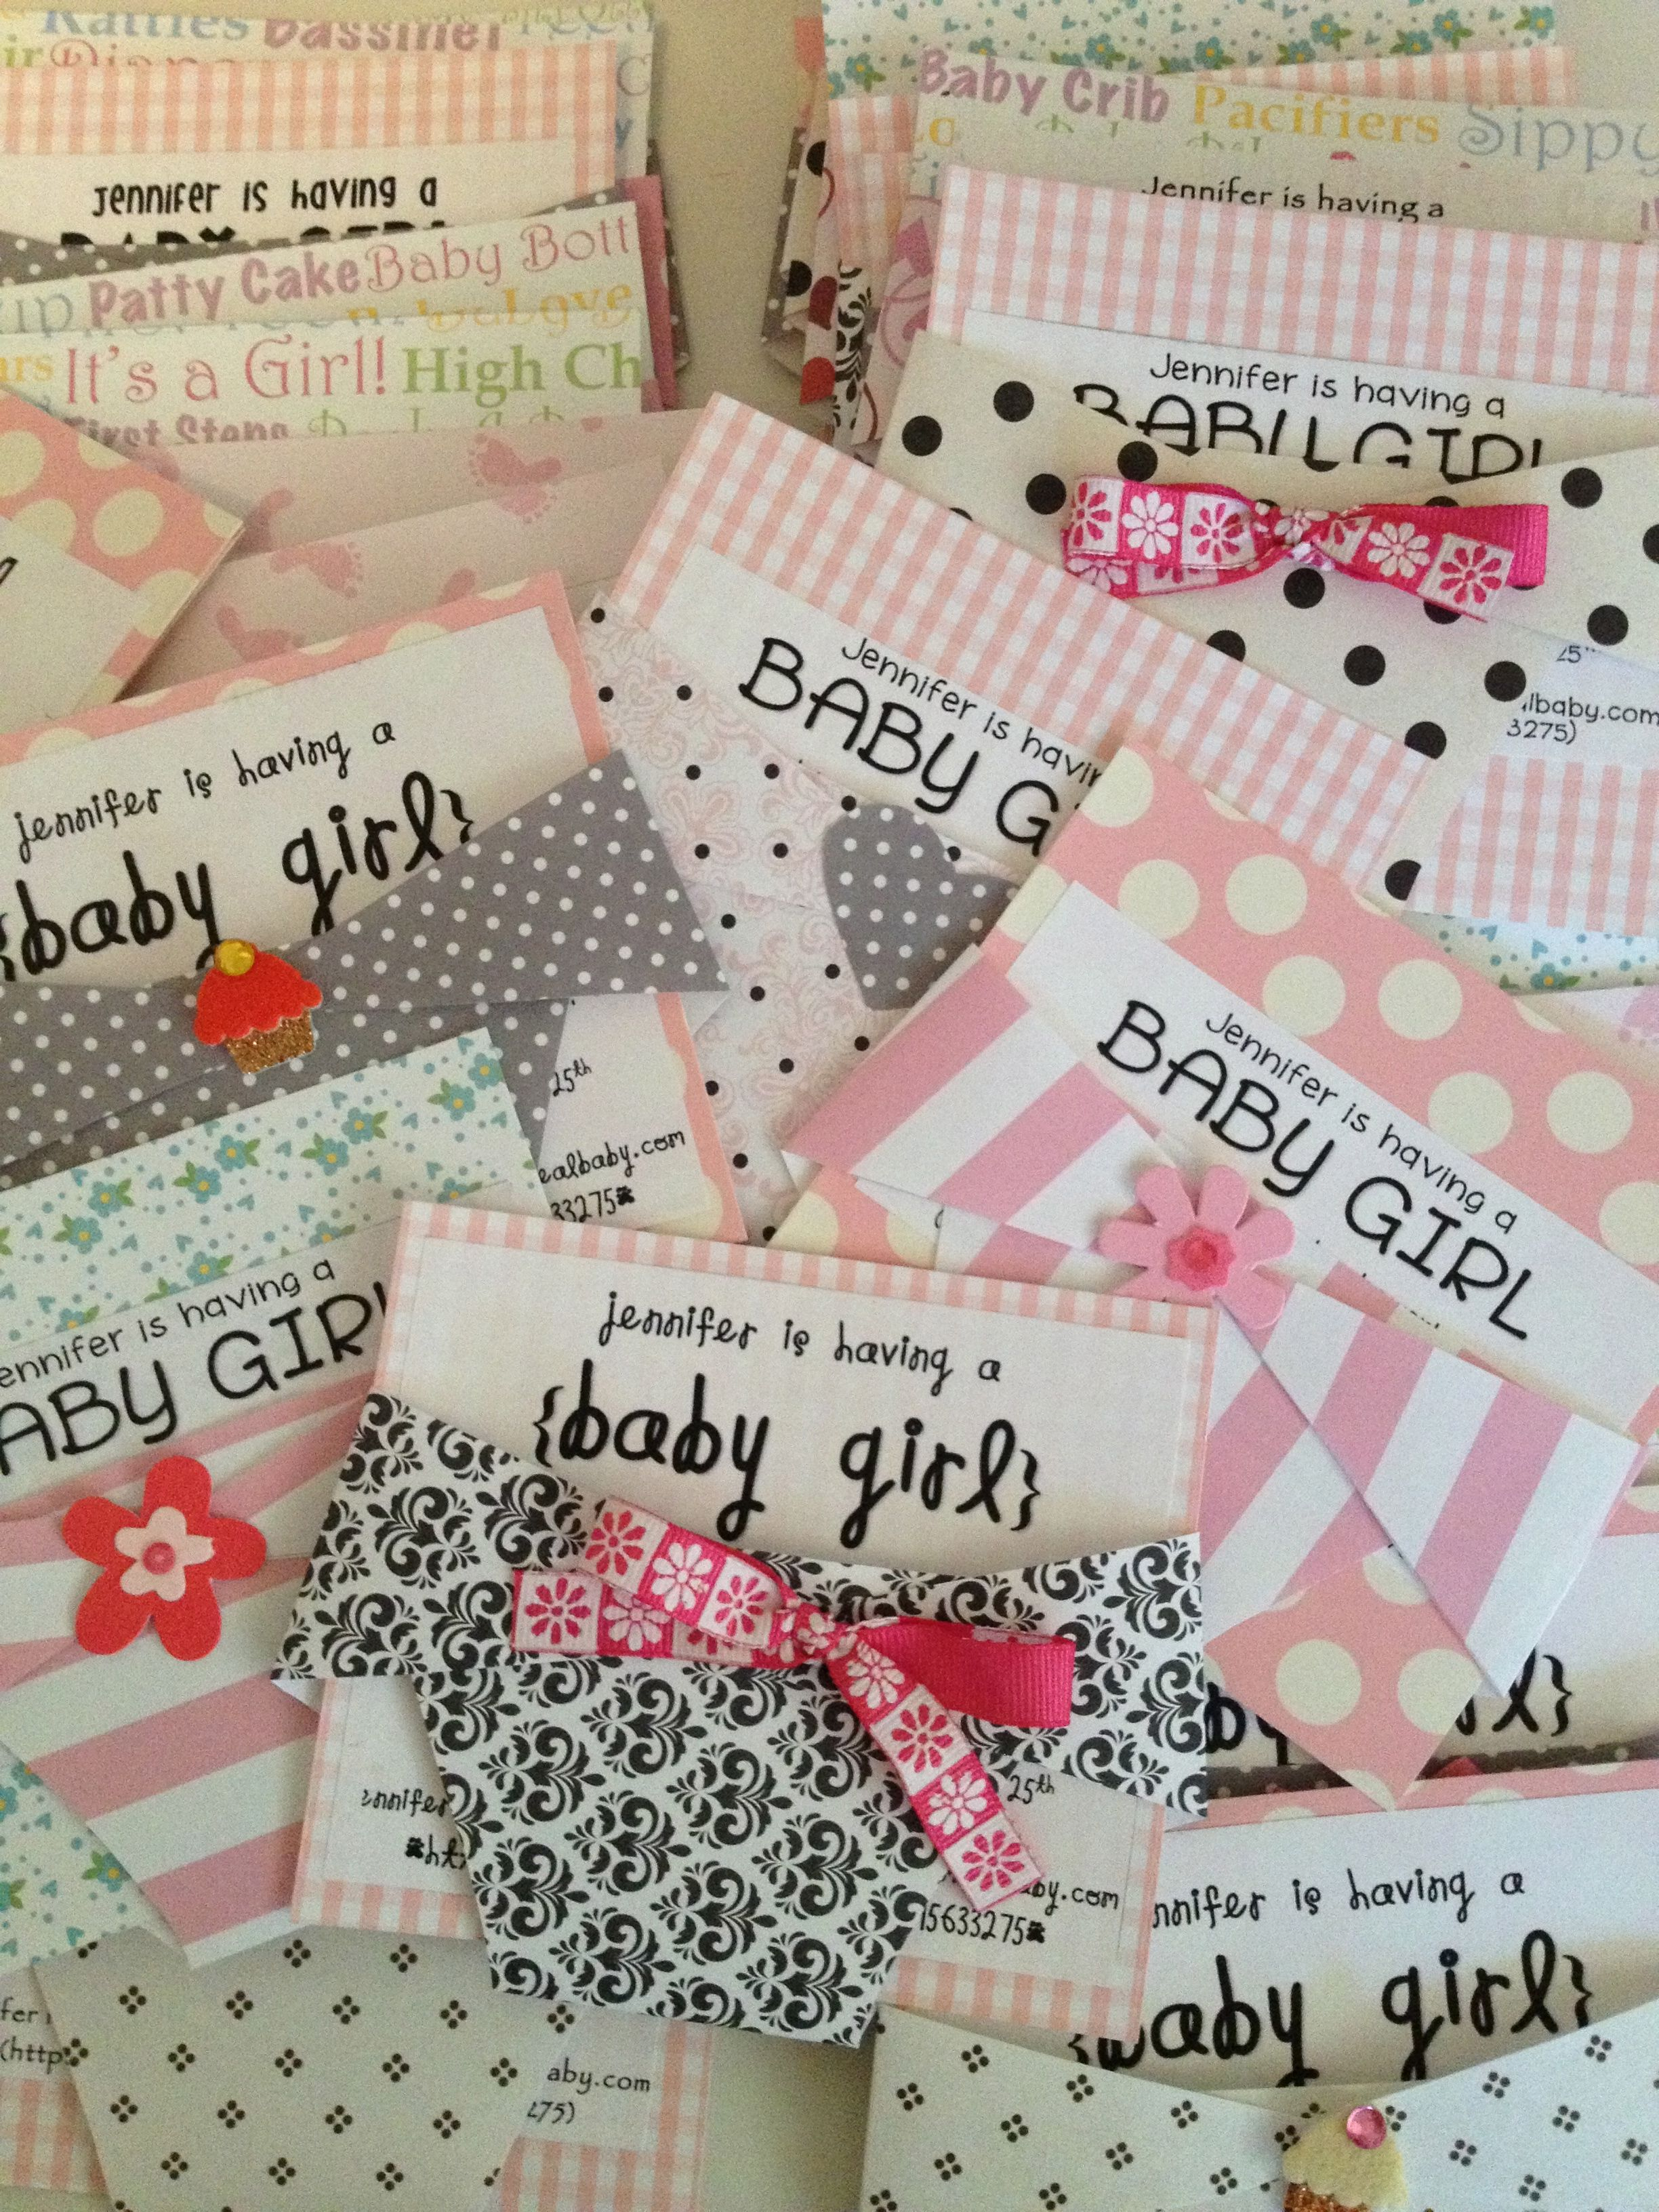 10 Nice Cute Ideas For Baby Shower Invitations diy baby shower invites such a cute idea so using it next time i